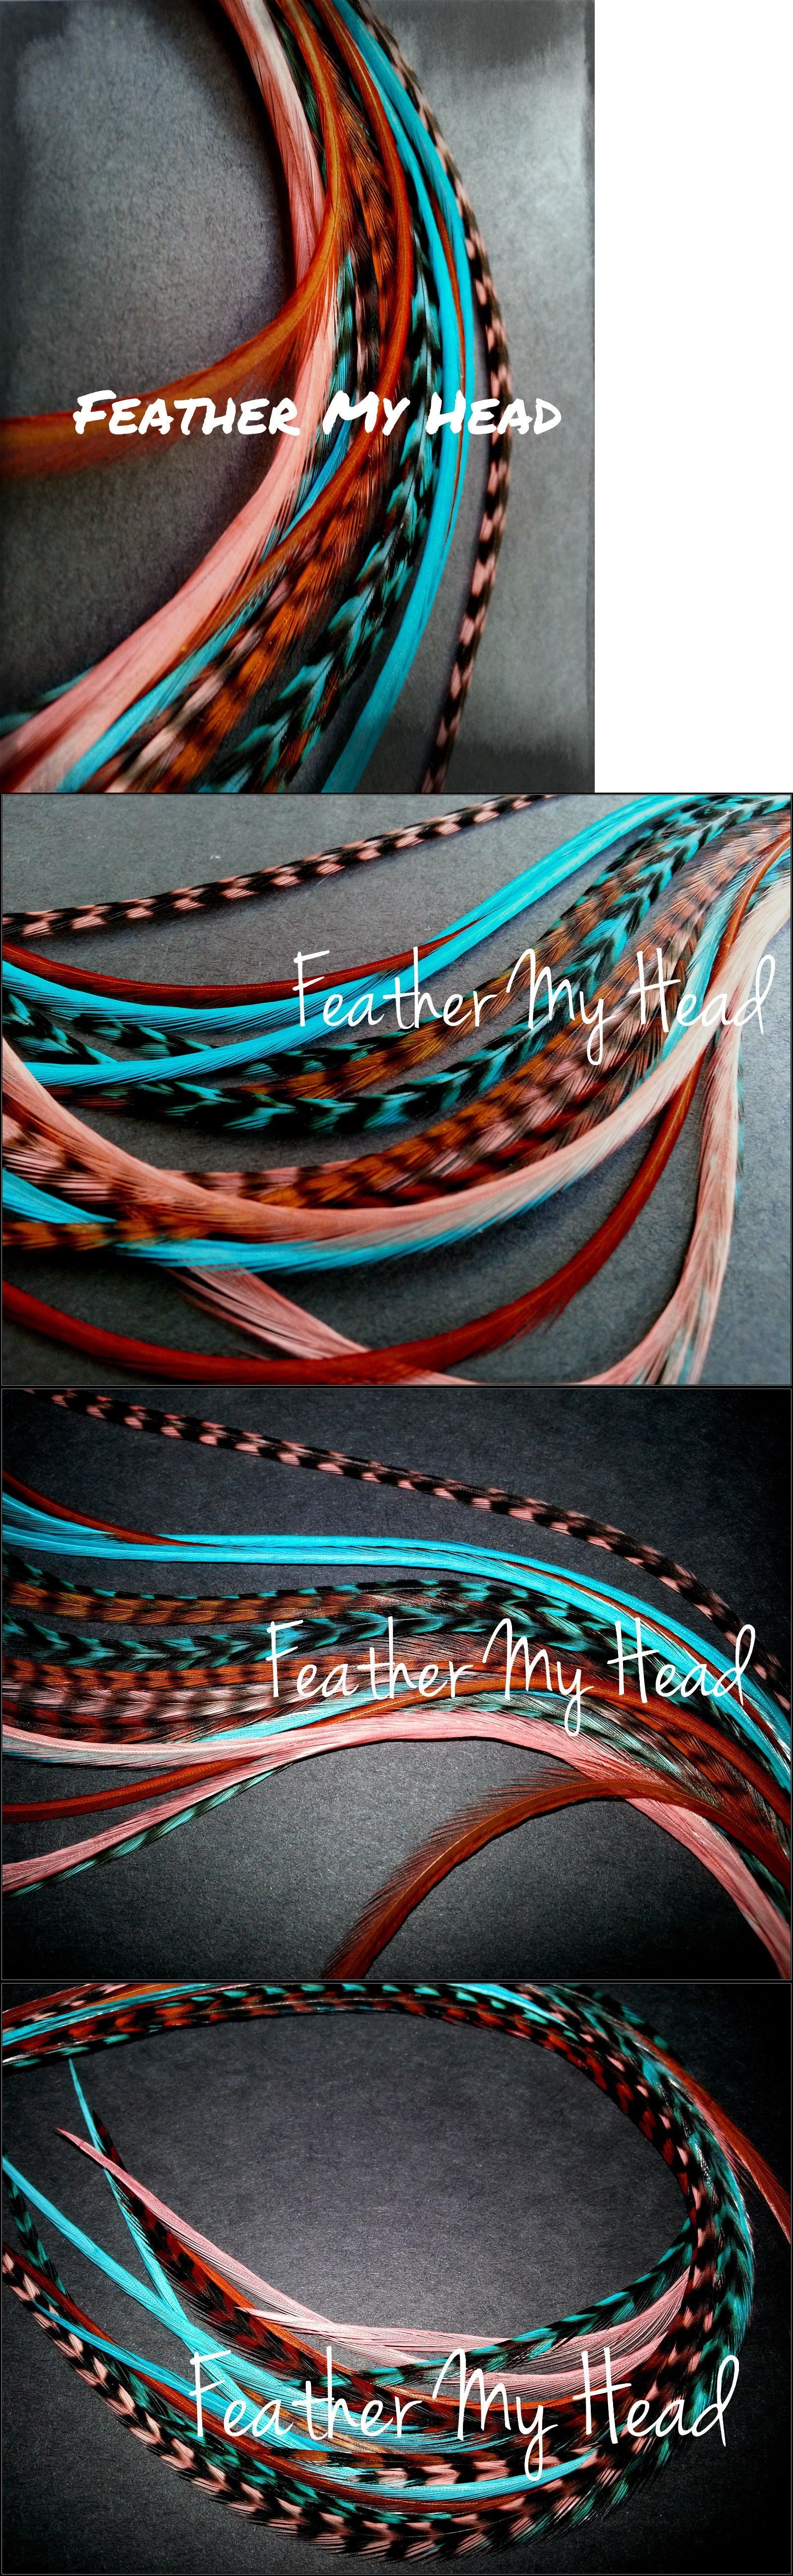 Hair accessories 50981 feather hair extension kit do it yourself hair accessories 50981 feather hair extension kit do it yourself diy with beads pulling solutioingenieria Image collections